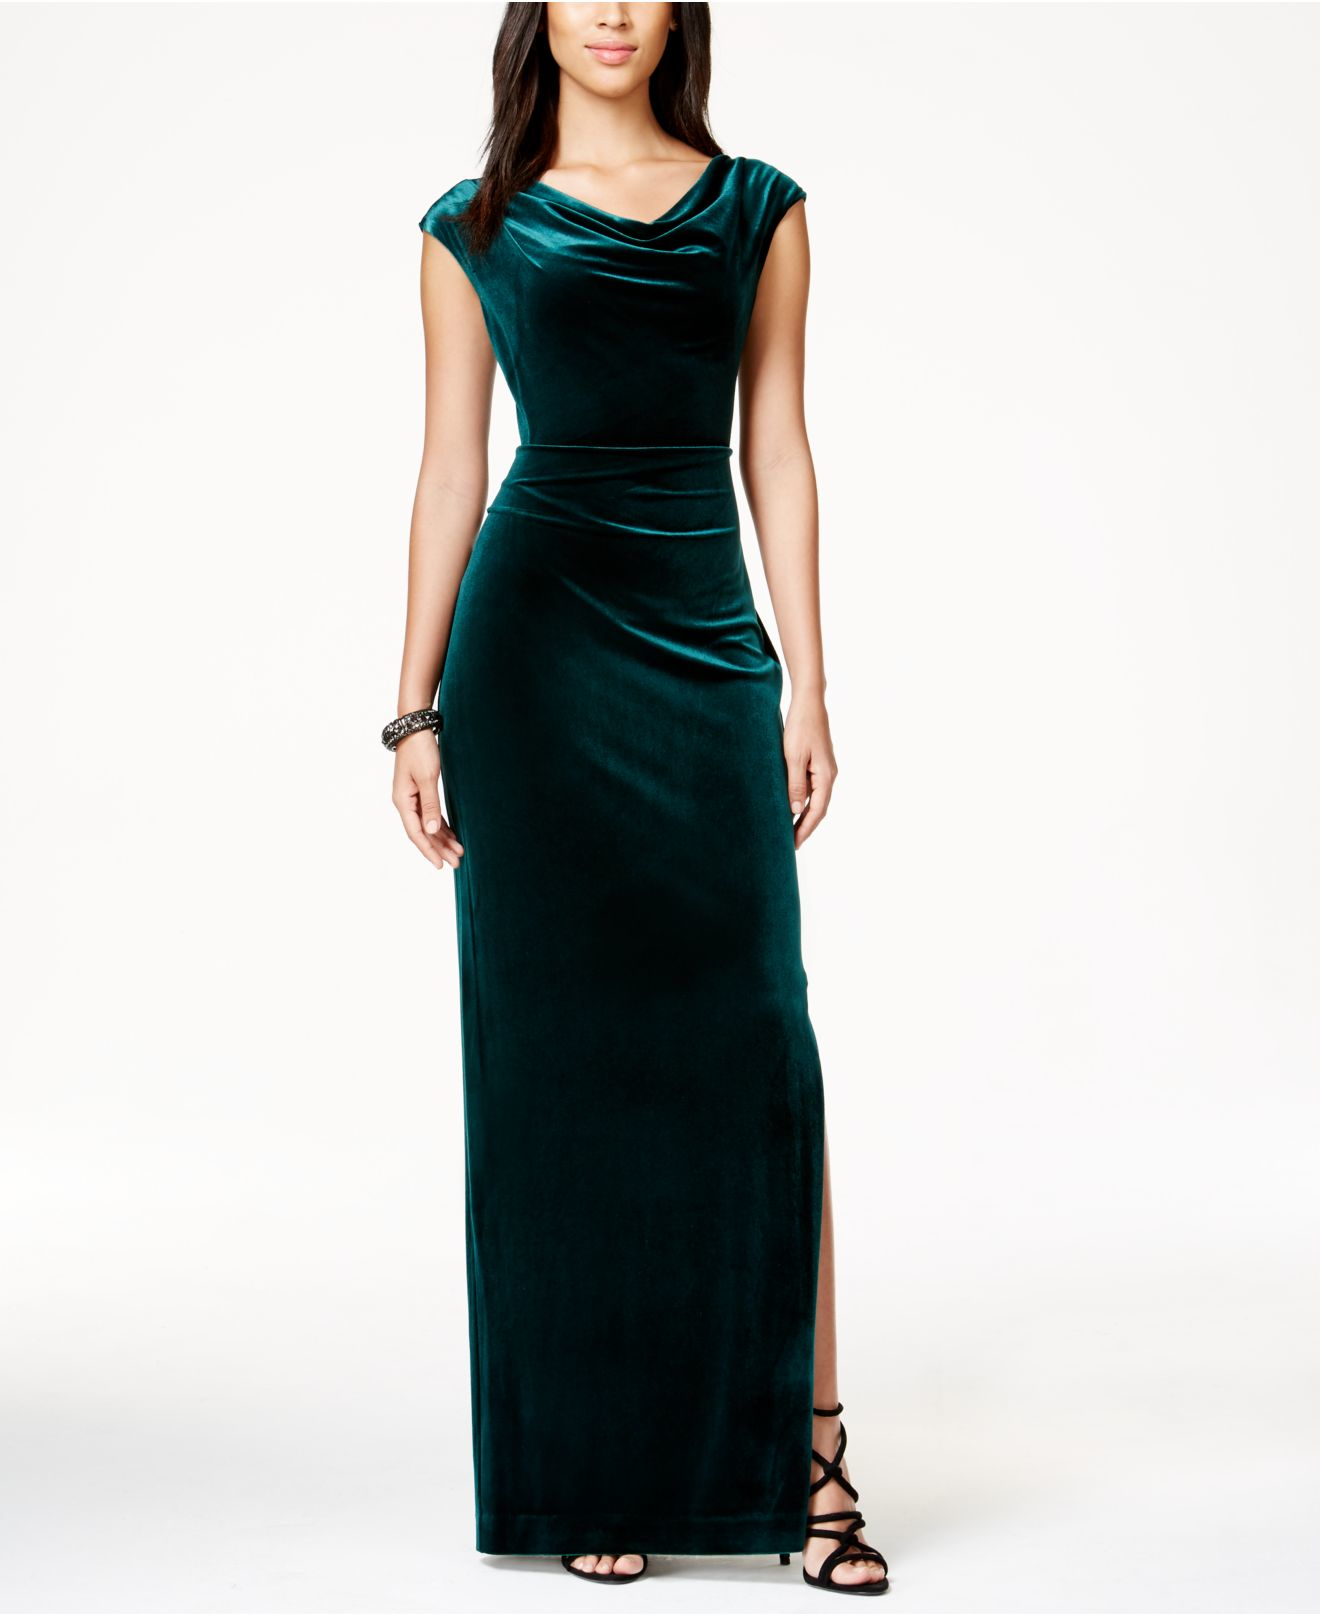 Lyst - Vince Camuto Cowl-neck Velvet Gown in Green